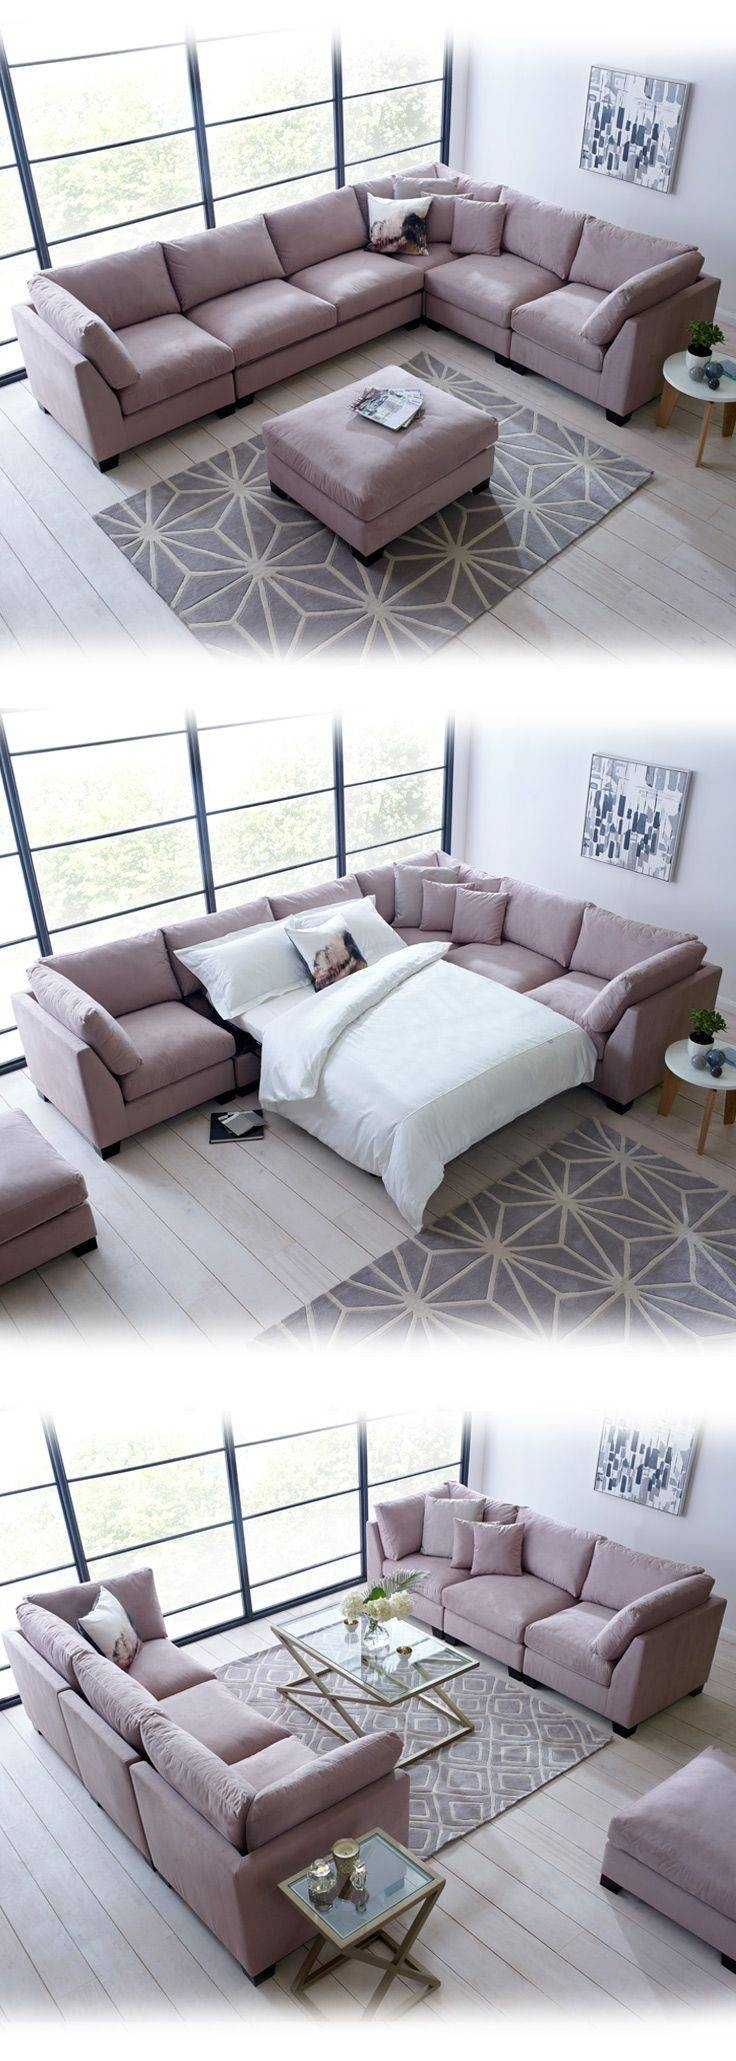 Best 25+ Corner Sofa Ideas On Pinterest | Grey Corner Sofa, White inside Unique Corner Sofas (Image 4 of 30)